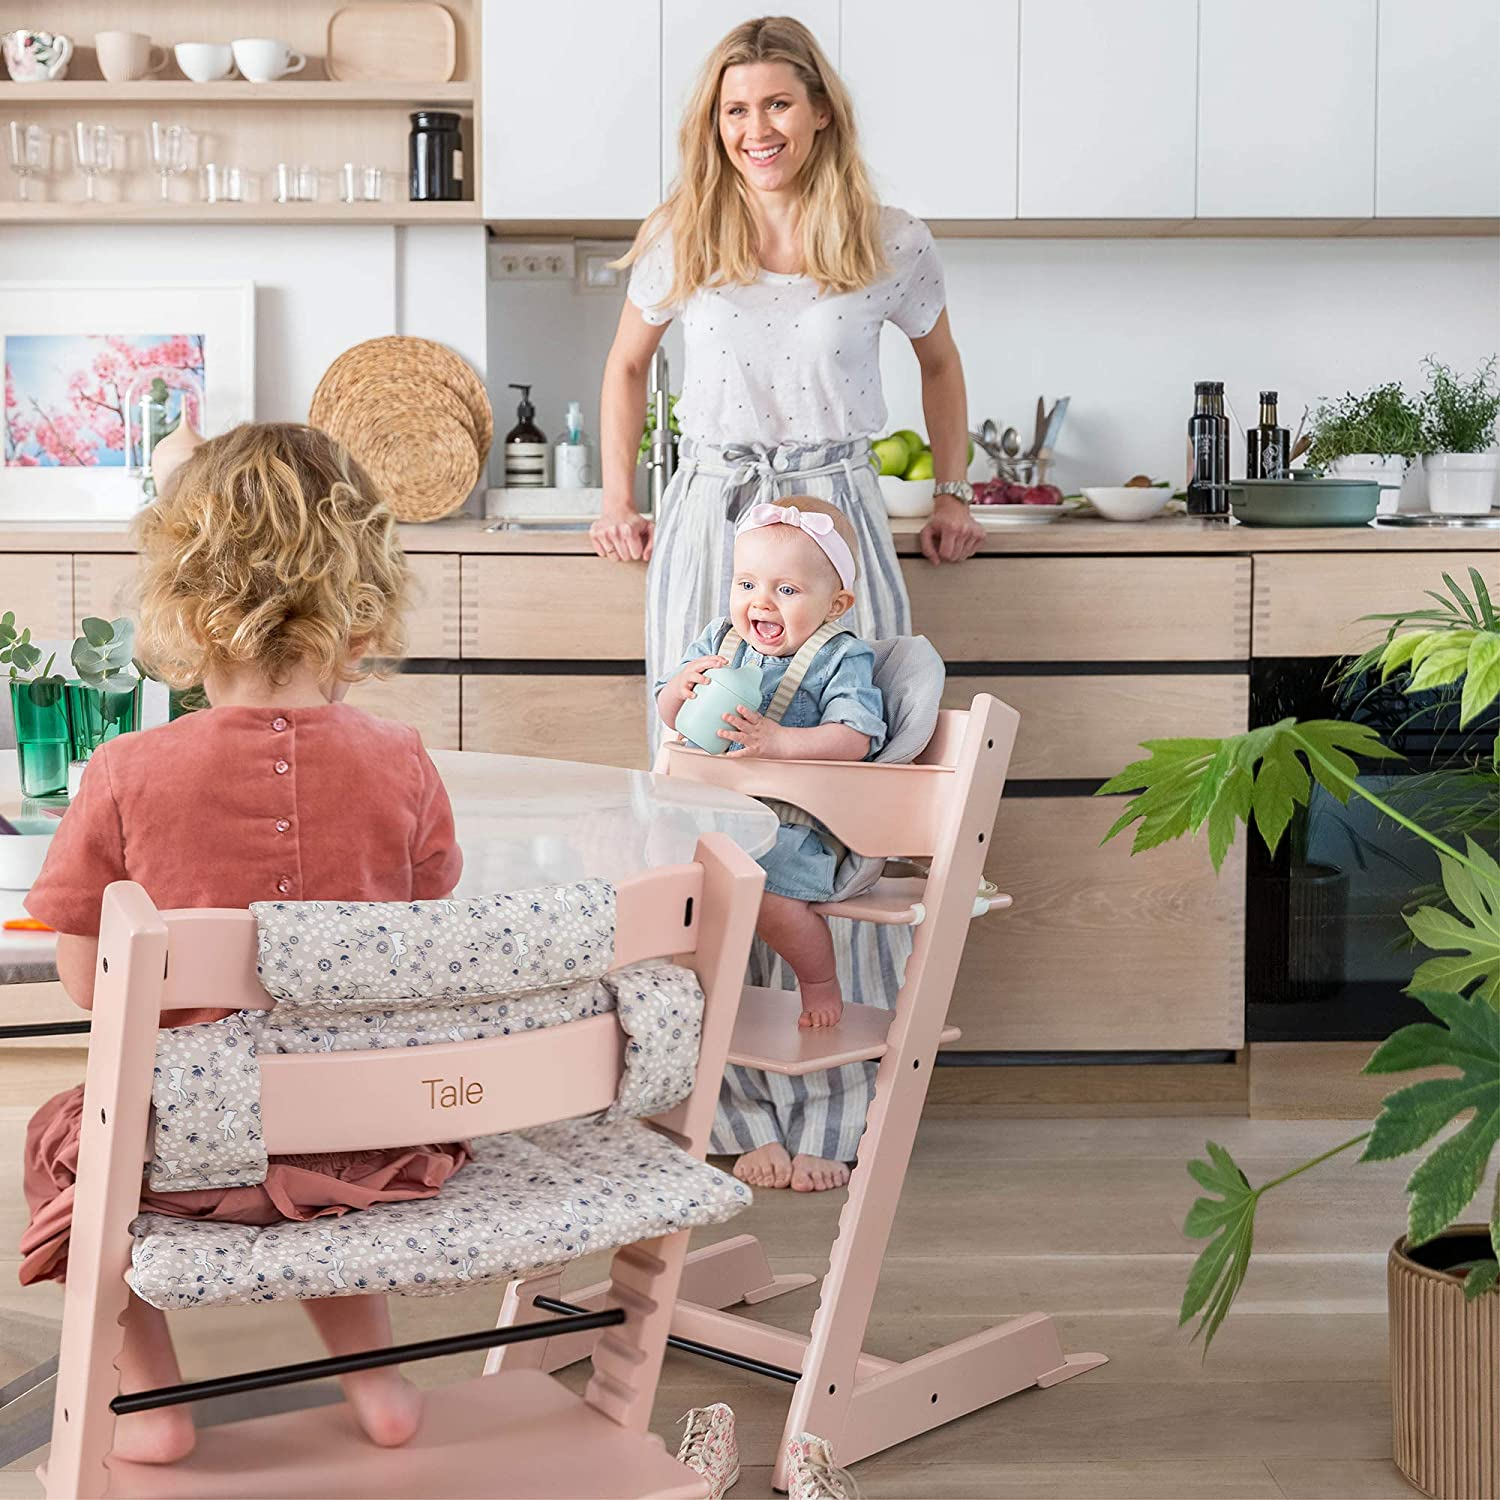 Tripp Trapp Adult Cushion for Adults High Chair Cushion for Tripp Trapp Chair Colour: Slate Twill